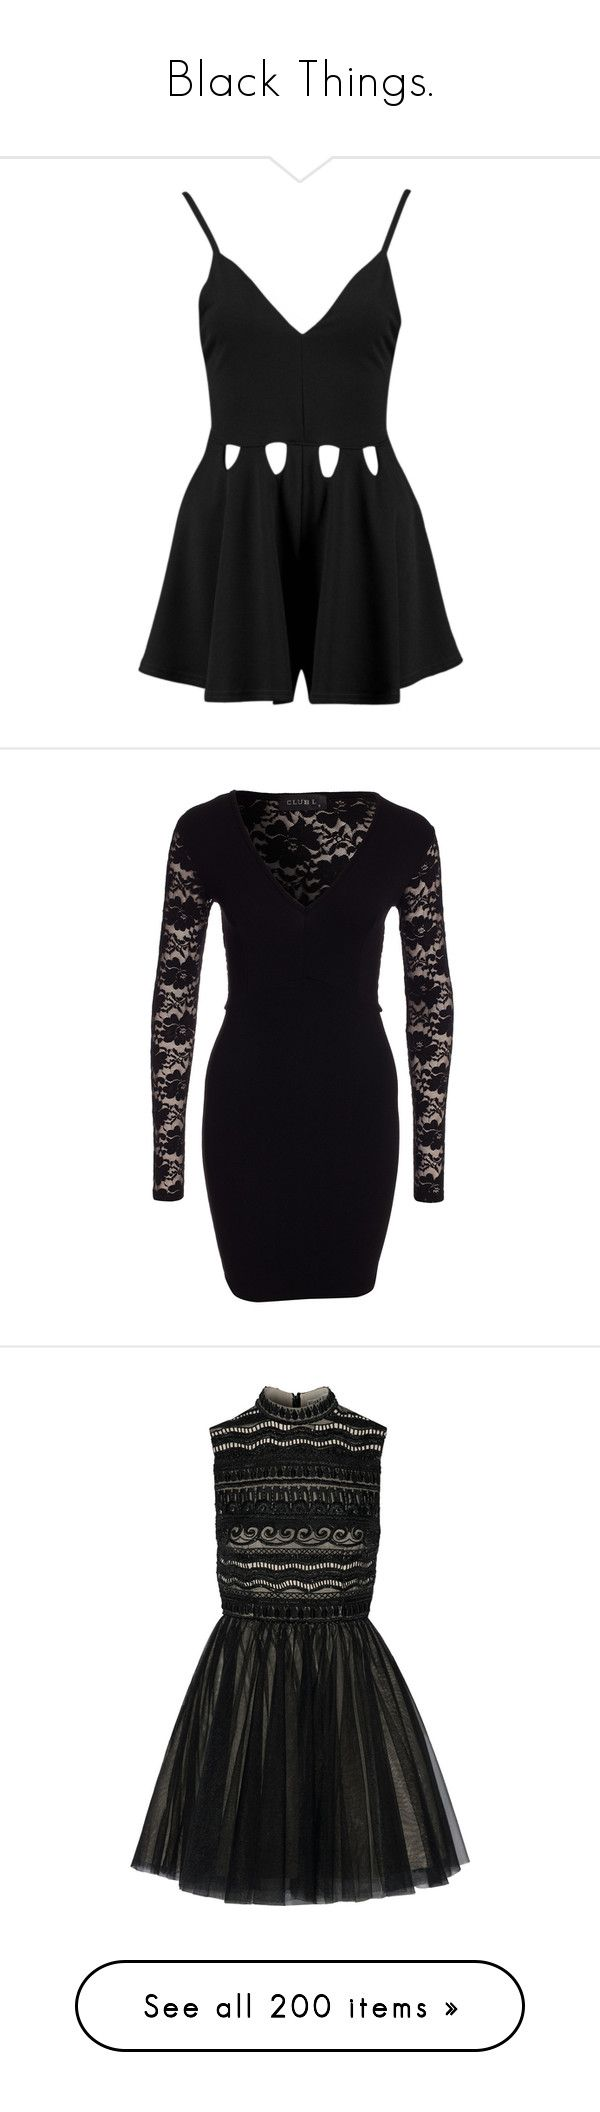 """""""Black Things."""" by alyssaclifford124 ❤ liked on Polyvore featuring jumpsuits, rompers, dresses, playsuits, jumpers, special occasion jumpsuits, holiday jumpsuits, boohoo jumpsuits, cocktail jumpsuit and playsuit jumpsuit"""